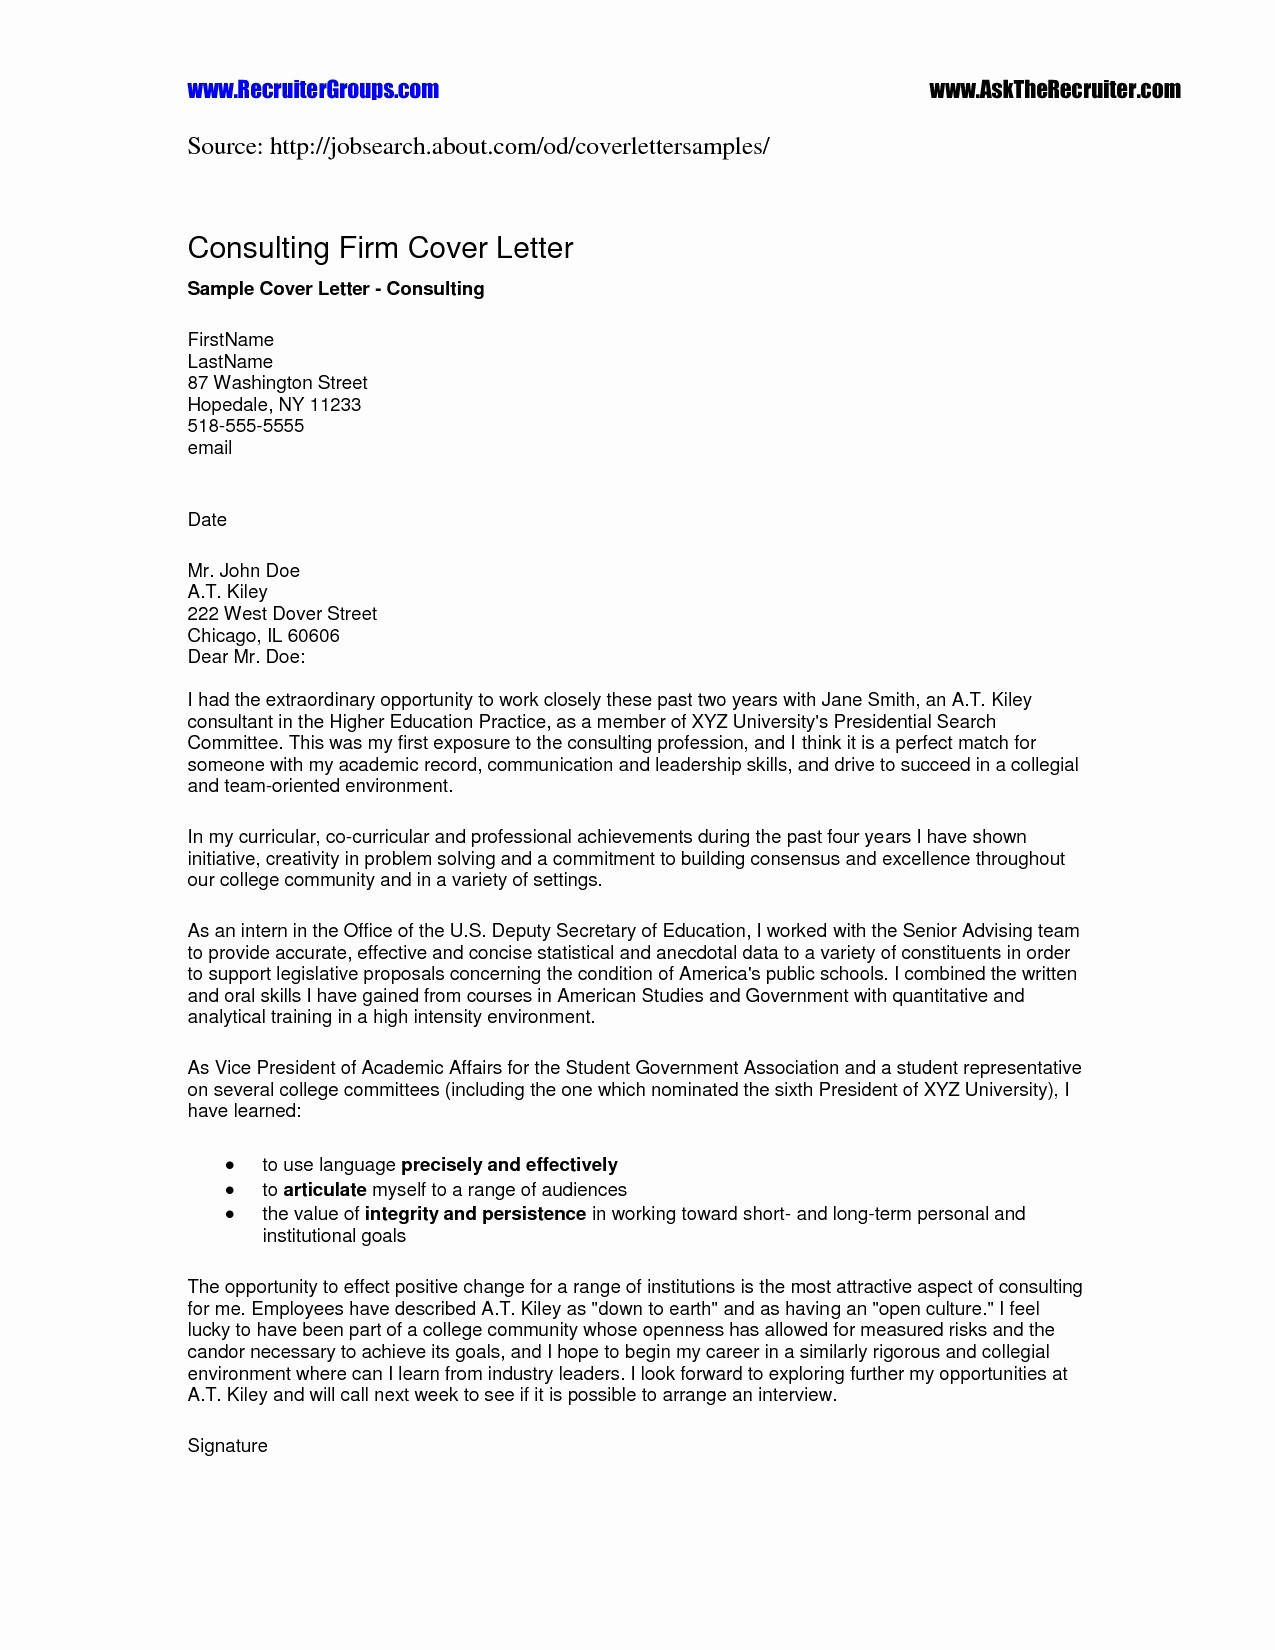 Cover Letter Template Free Google Docs - Resume Templates for Google Docs Inspirational Inspirational Free